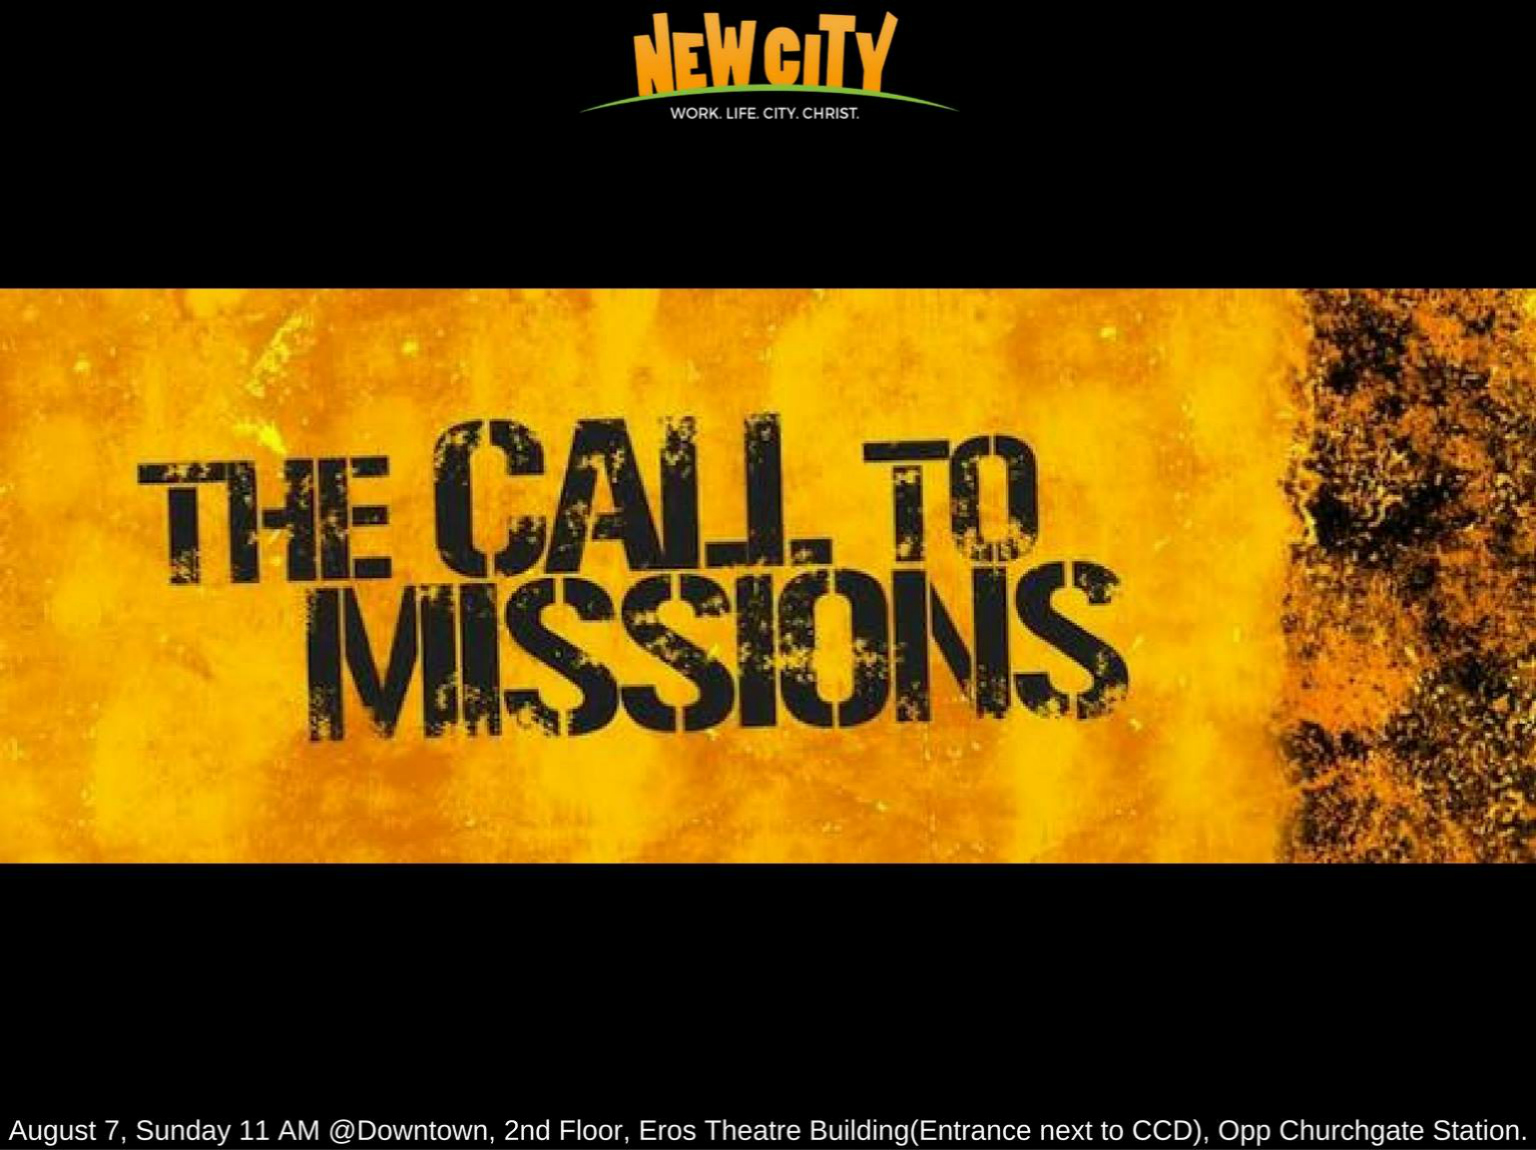 The Call to Mission Image